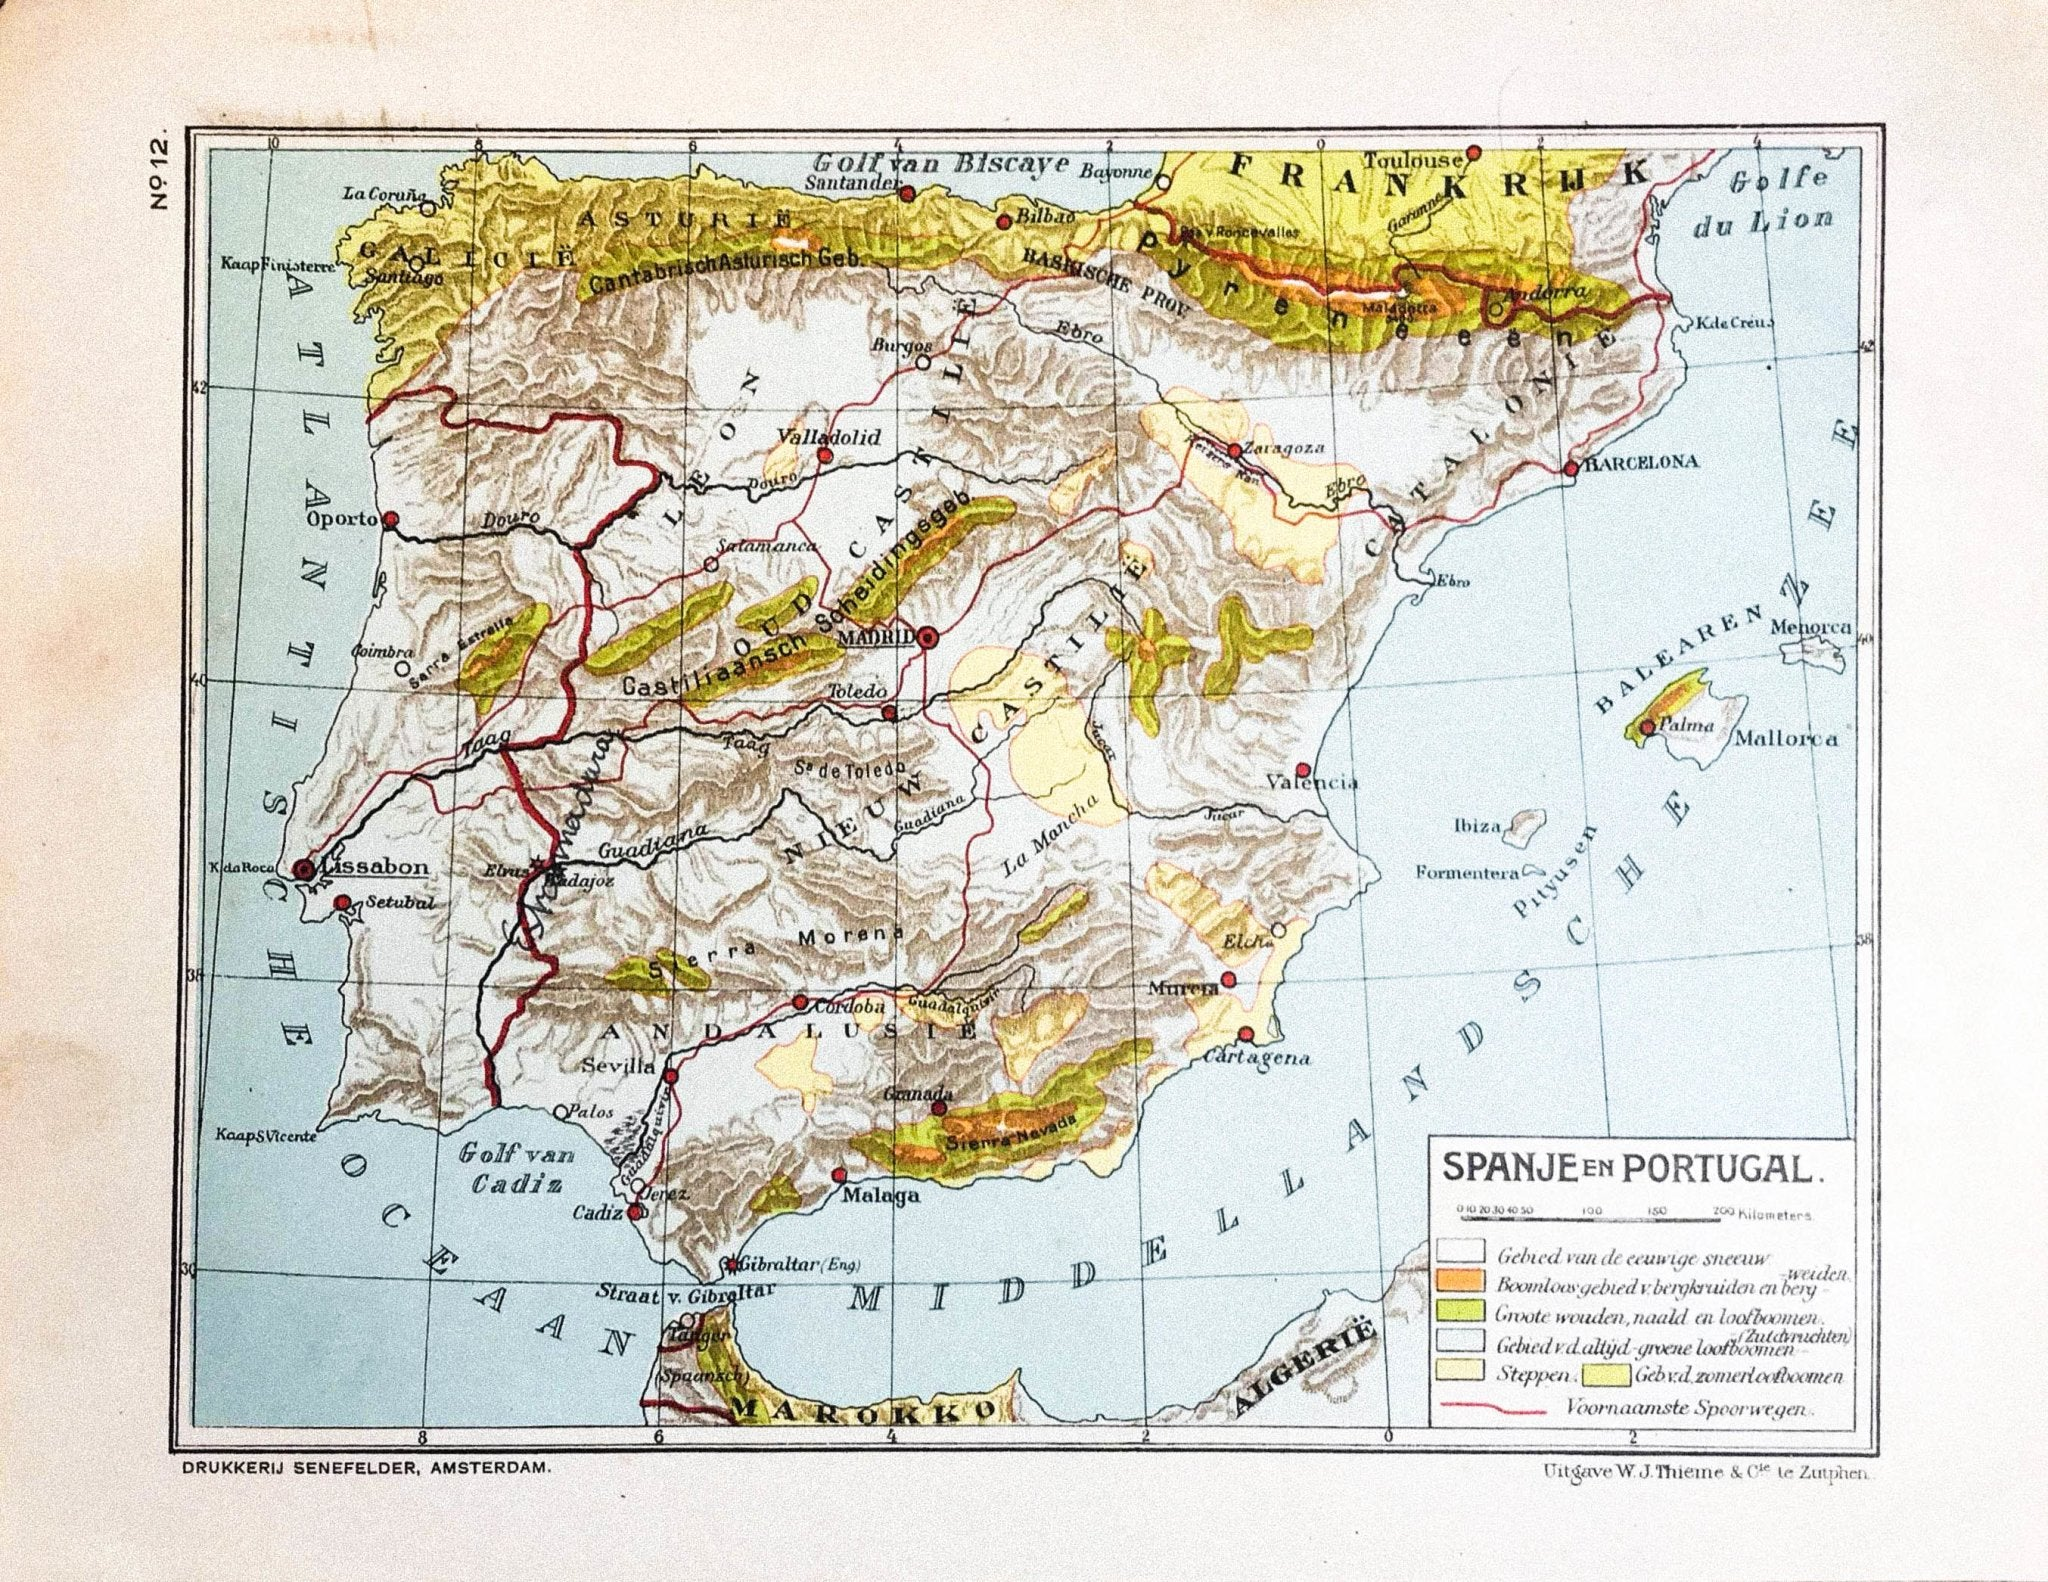 Spanje en Portugal - 1930 - World of Maps & Travel